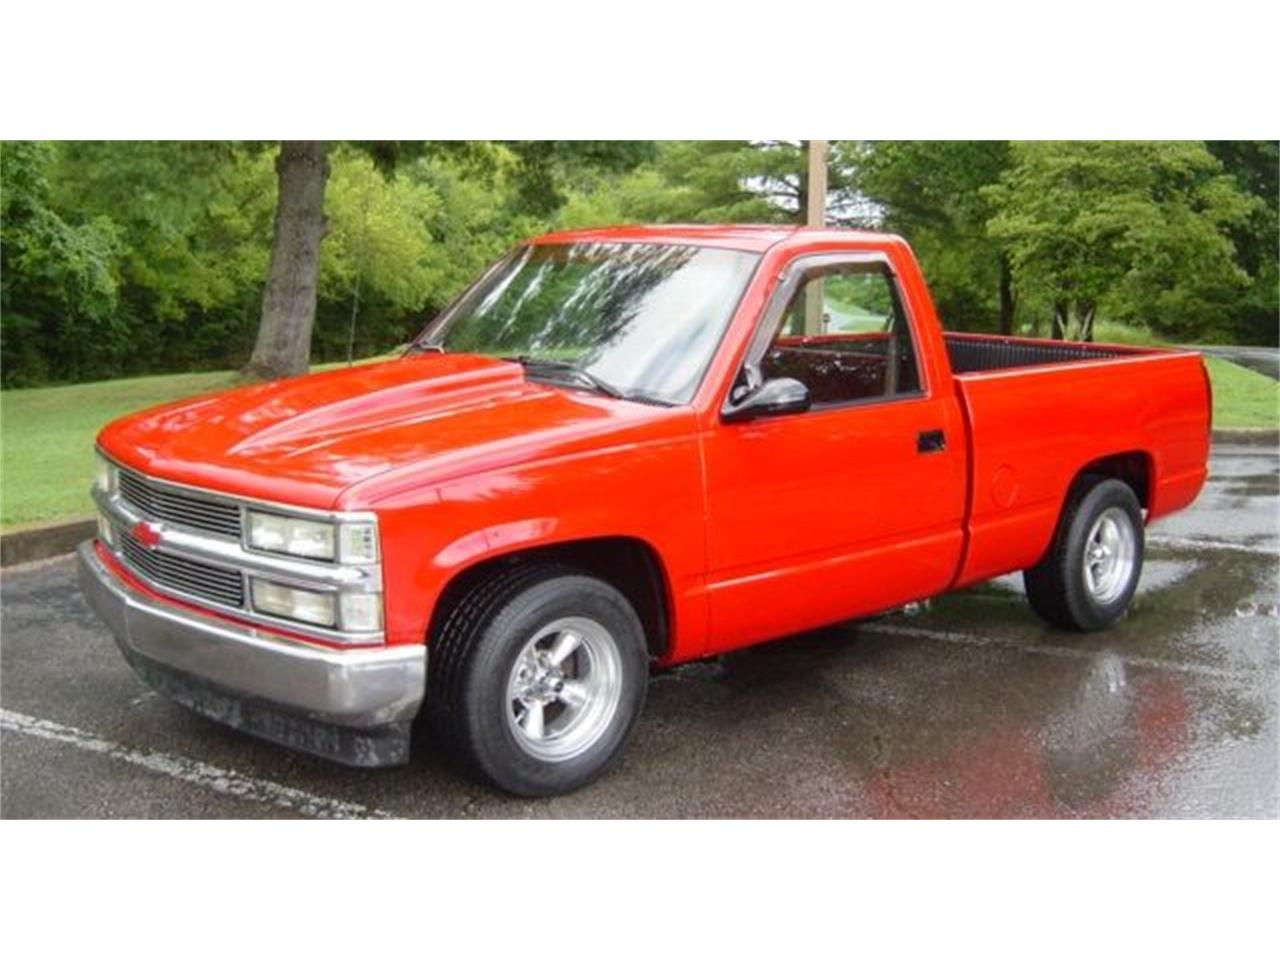 1988 Chevrolet Silverado (CC-1379063) for sale in Hendersonville, Tennessee